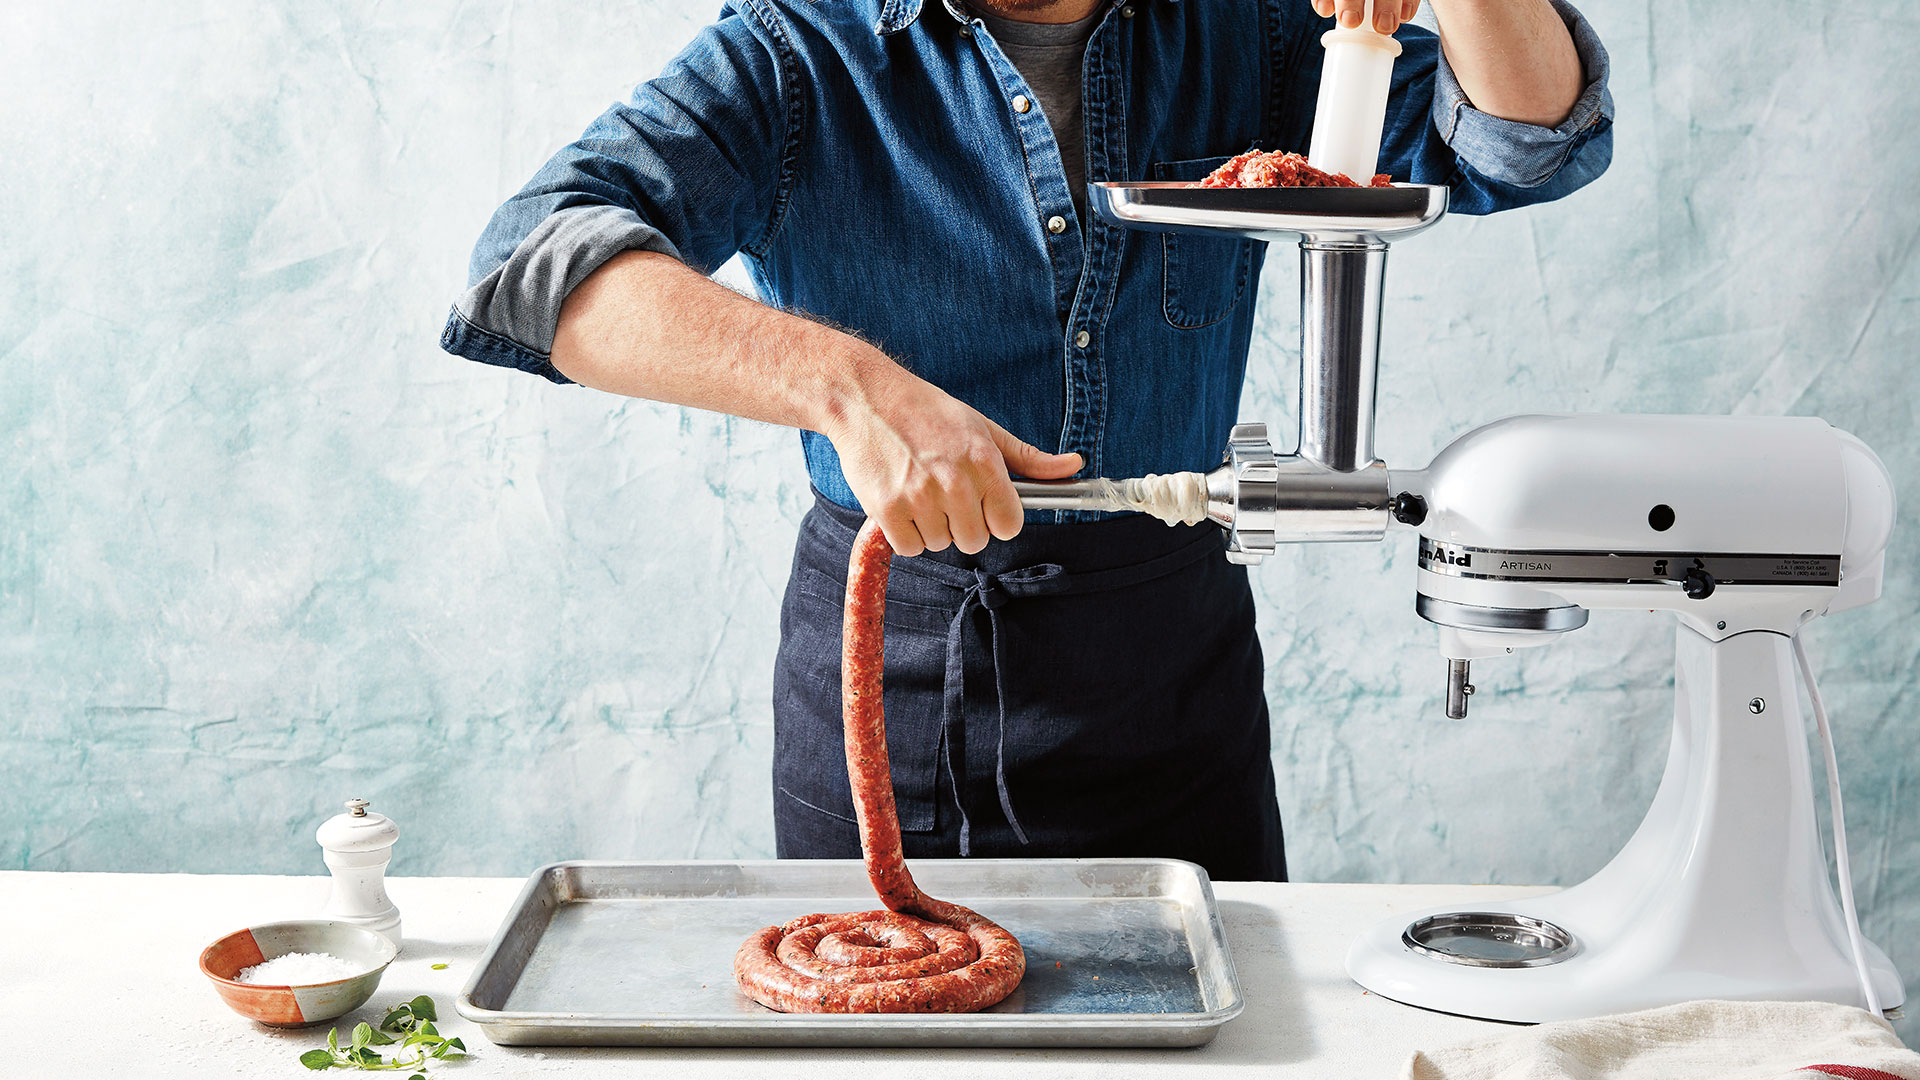 How to Make Cacciatore Sausage at Home